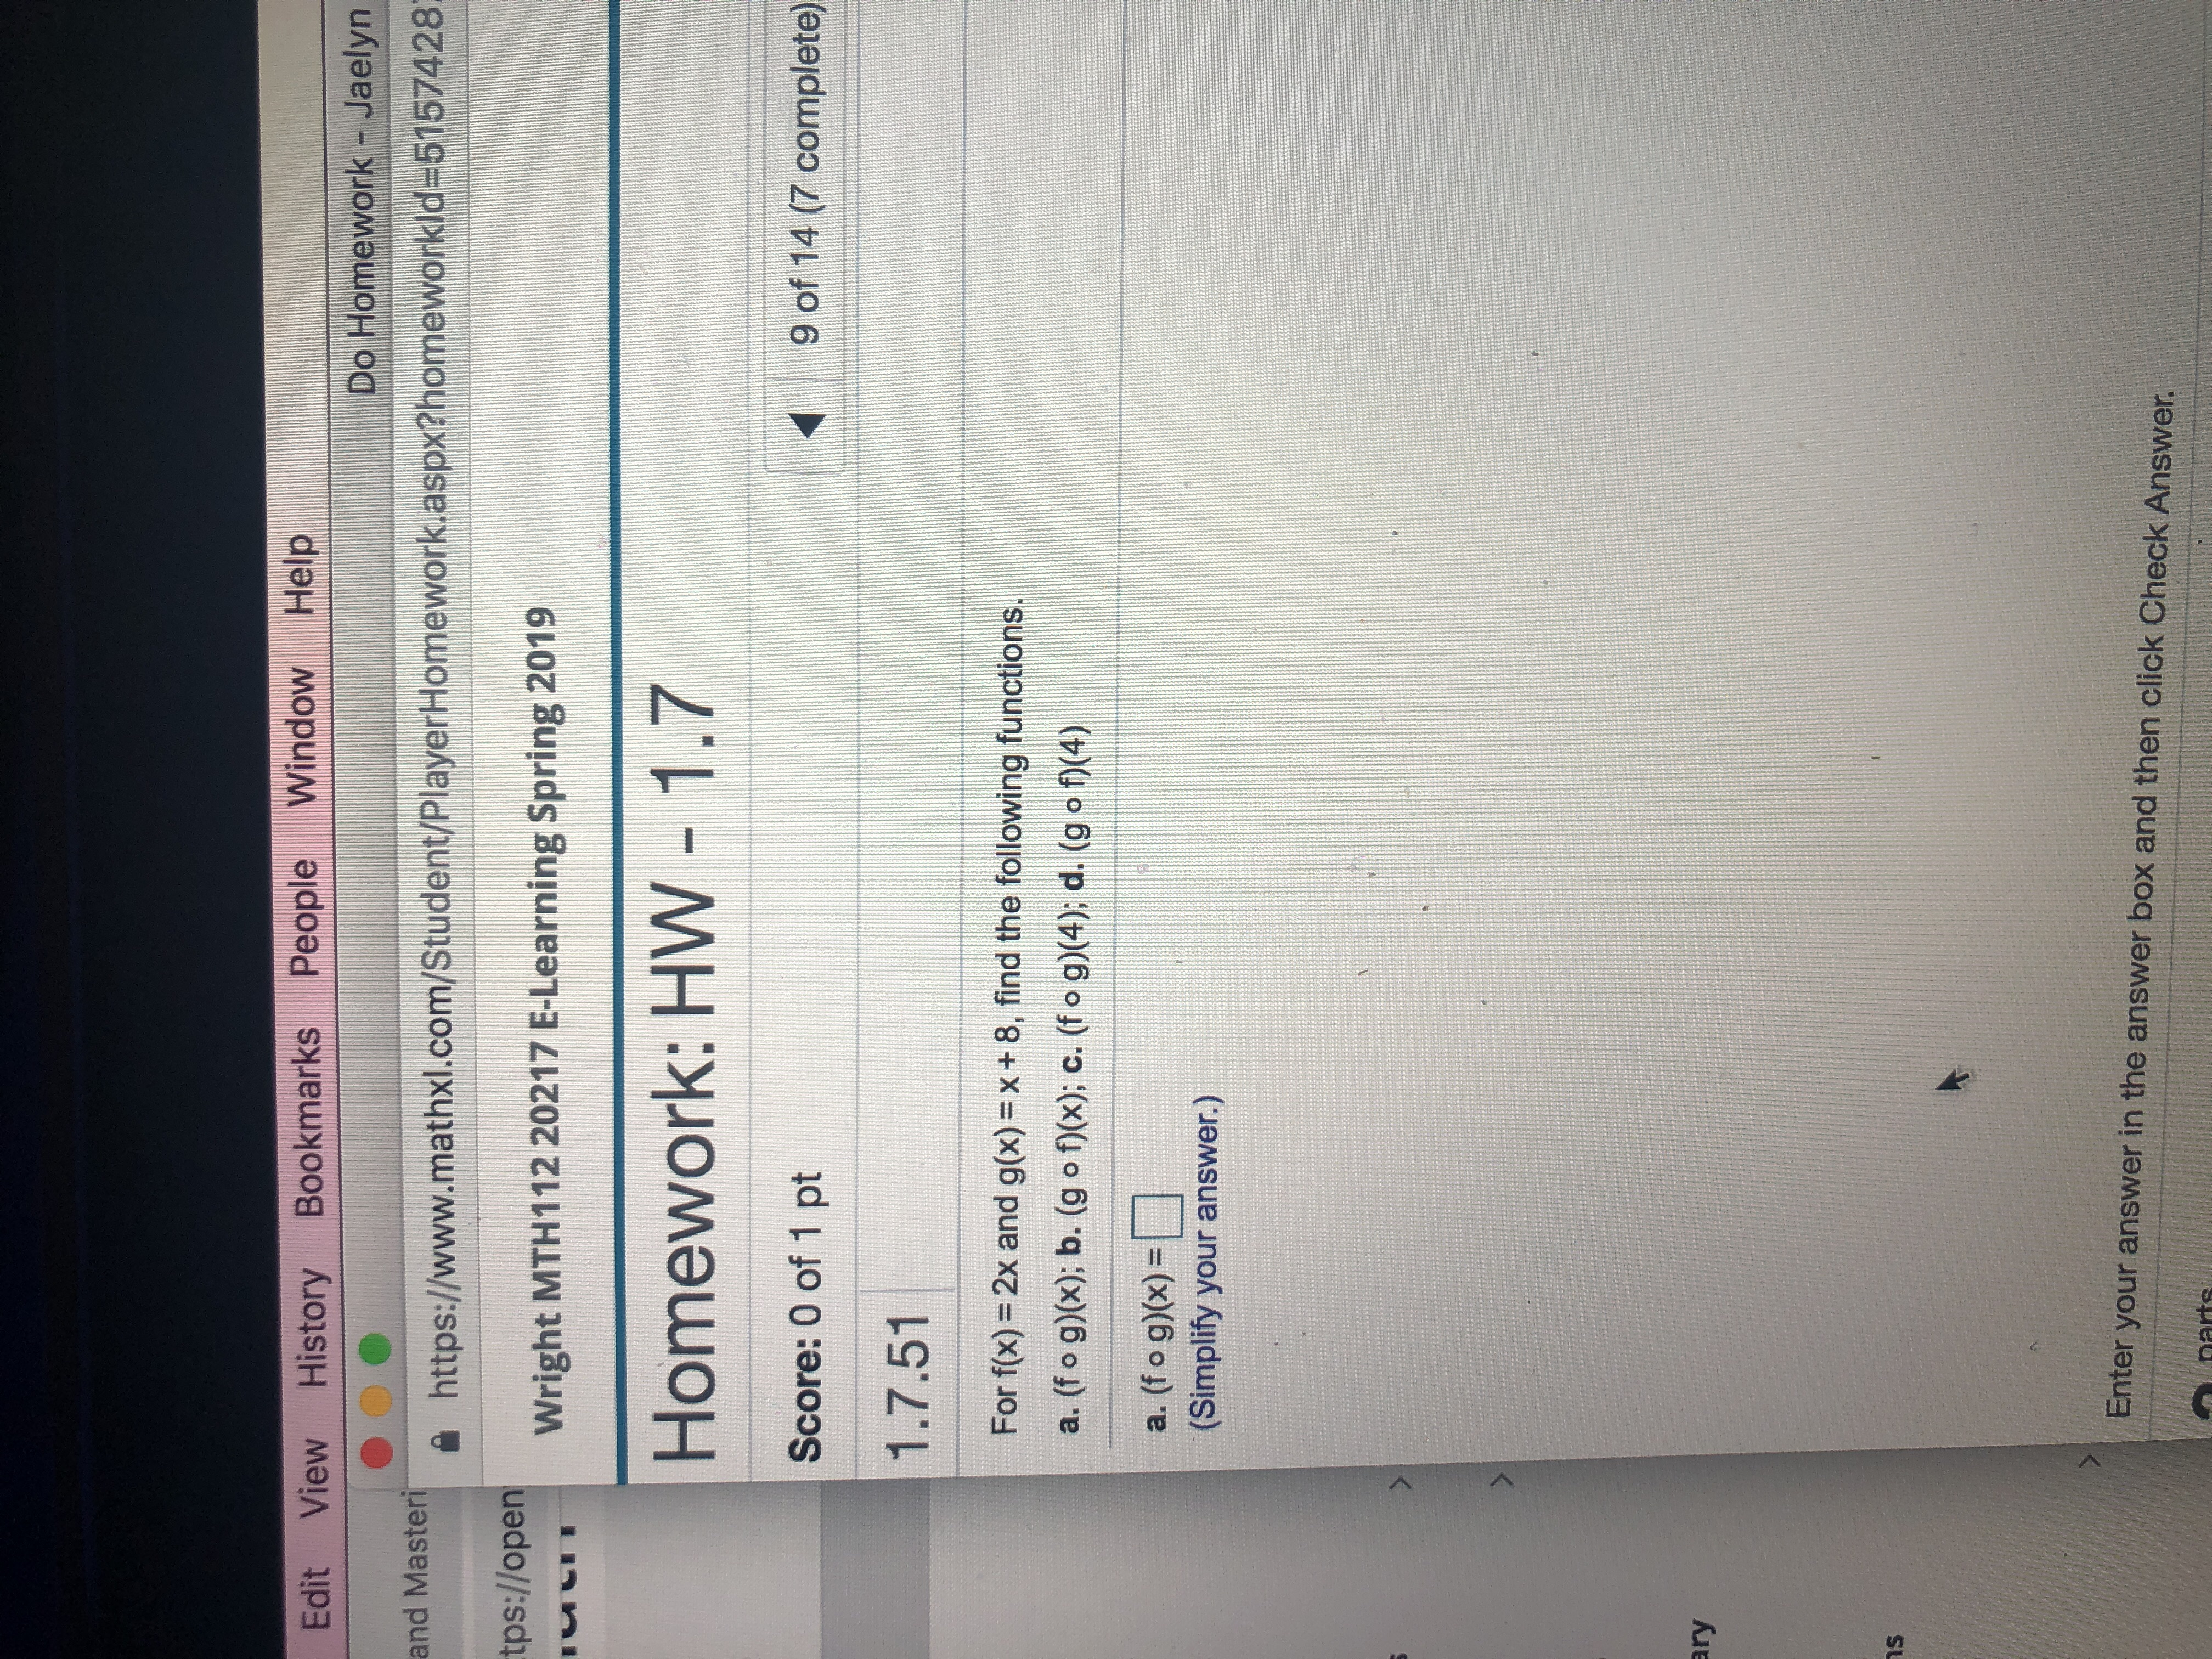 Edit View History Bookmarks People Window Help Do Homework - Jaelyn https://www.mathxl.com/Student/PlayerHomework.aspx?homeworkId=5157428 wright MTH 112 20217 E-Learning Spring 2019 Homework: HW - 1.7 Score: 0 of 1 pt 1.7.51 tps://open uい· 9 of 14 (7 complete) For f(x) = 2x and g(x)= x + 8, find the following functions. a. (f o g)x); b. (g o f)(x), c. (f o g) 4); d. (g o1(4) a(fo g))- (Simplify your answer.) ary ns Enter your answer in the answer box and then click Check Answer